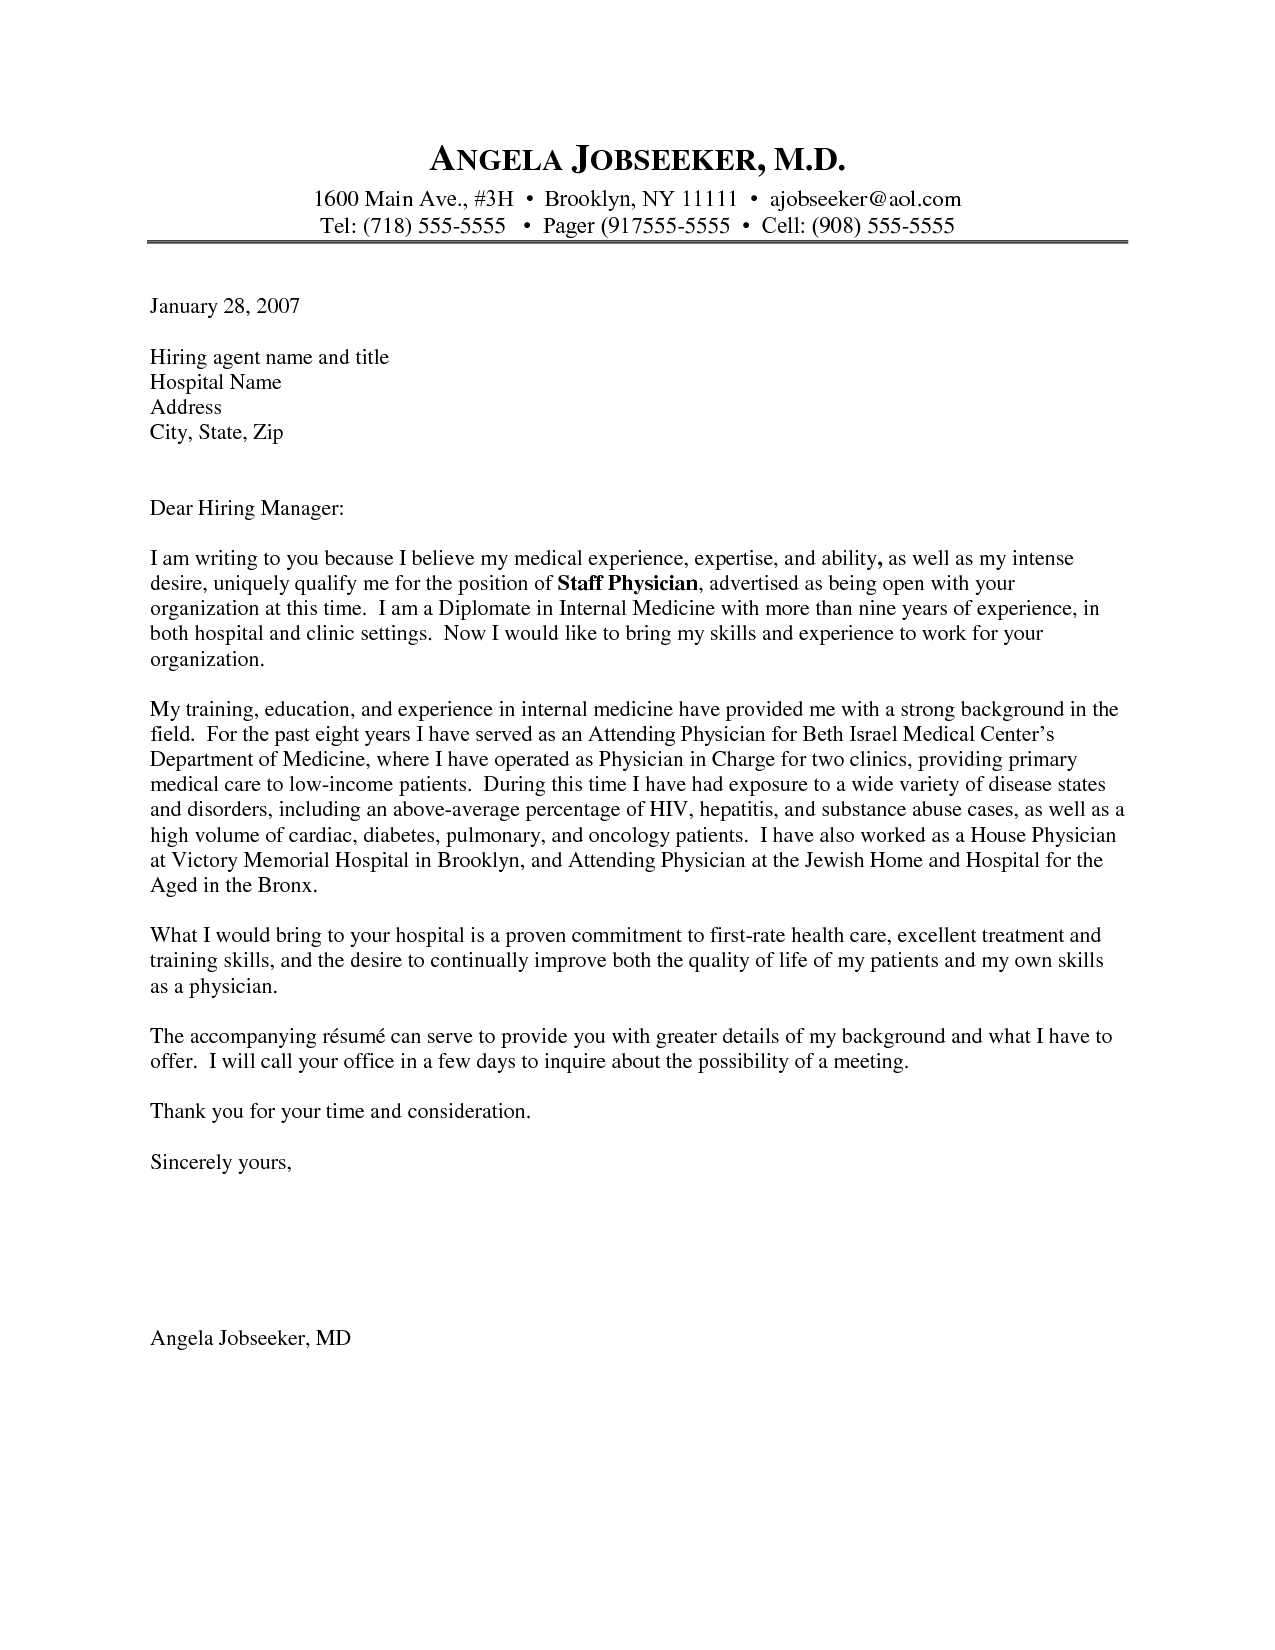 examples of medical coverletters doctor cover letter example my style pinterest cover